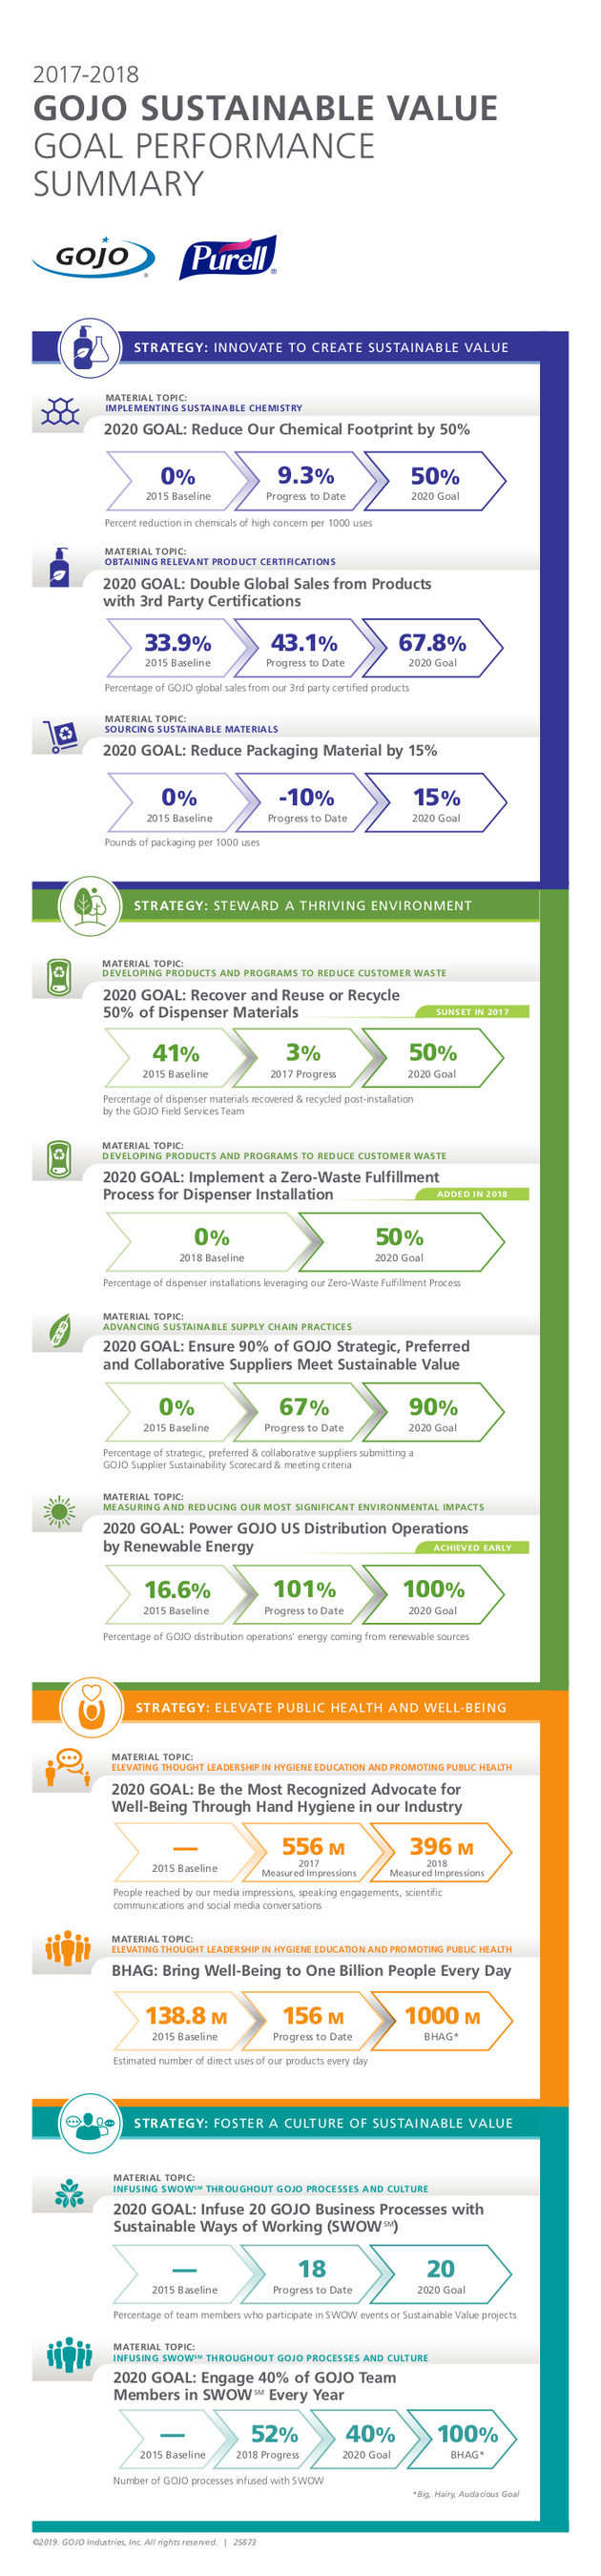 GOJO performance summary of the company's progress throughout 2017 and 2018 against its 2020 Sustainable Value Strategies and Goals, which focus on creating social, environmental and economic value for its stakeholders